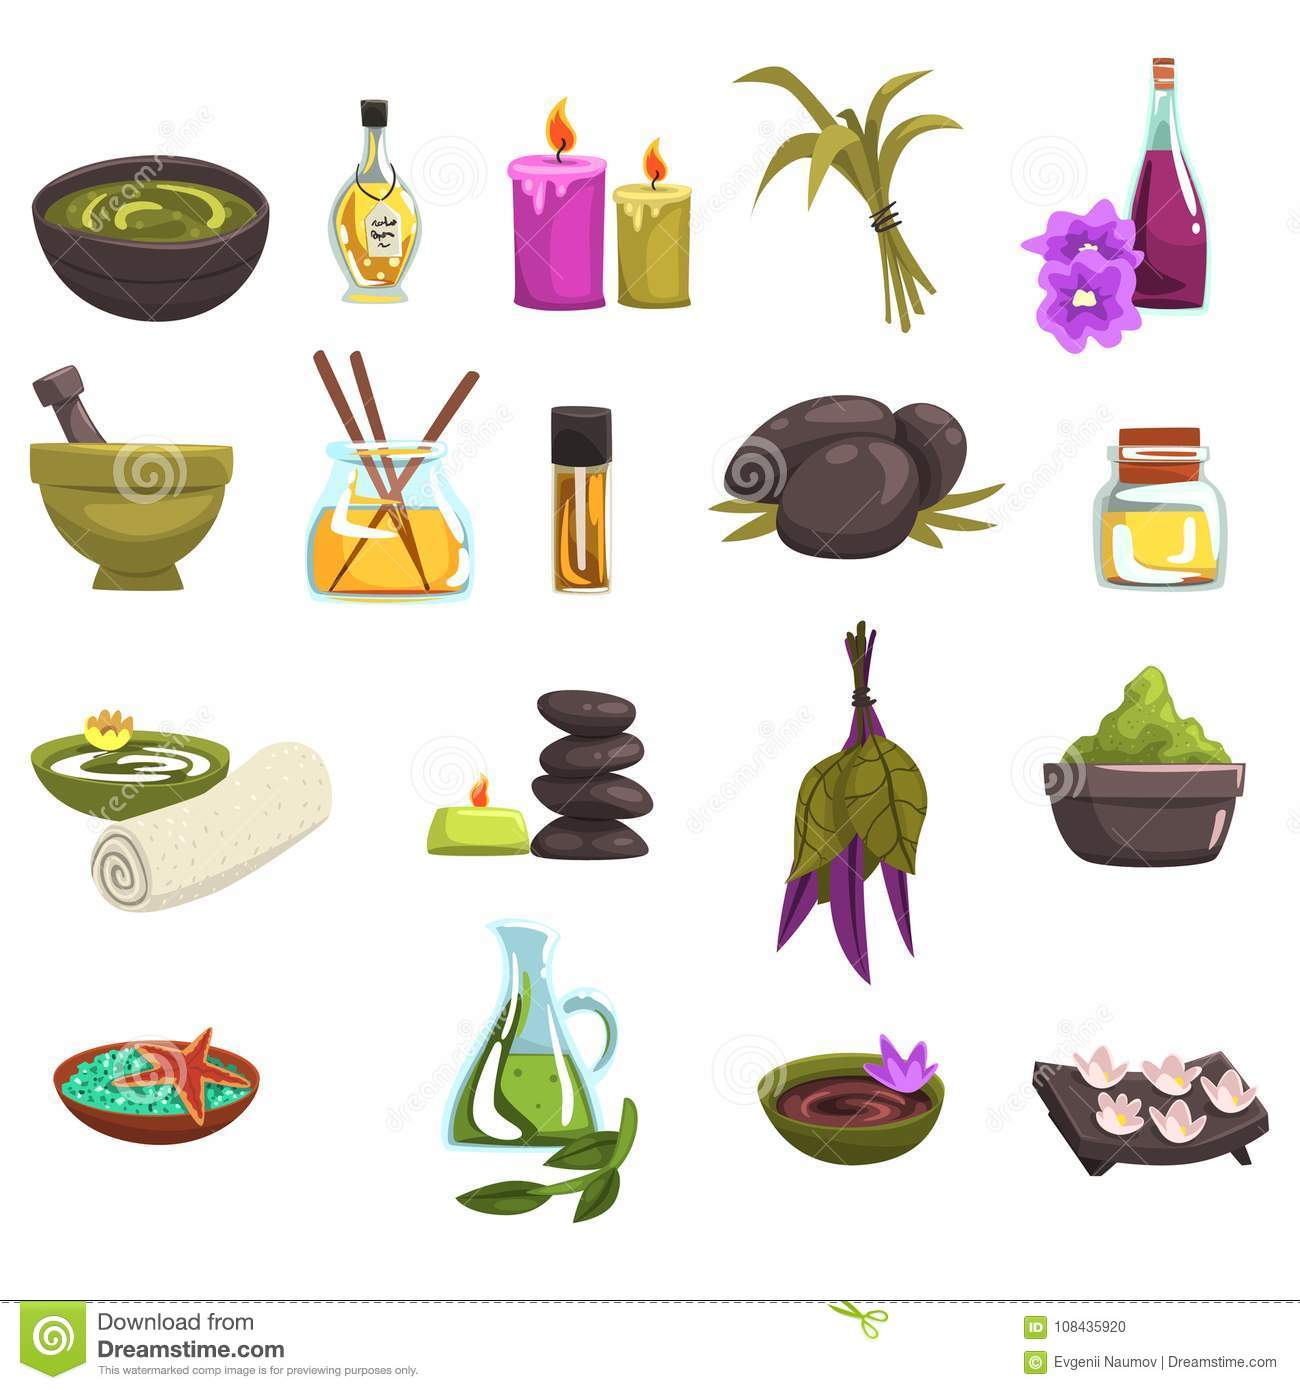 Spa Salon And Body Care Design Elements Set Oil And Herbs Candles Sea Salt Warm Stones Towel Flowers Beauty Stock Vector Illustration Of Medical Herbal 108435920